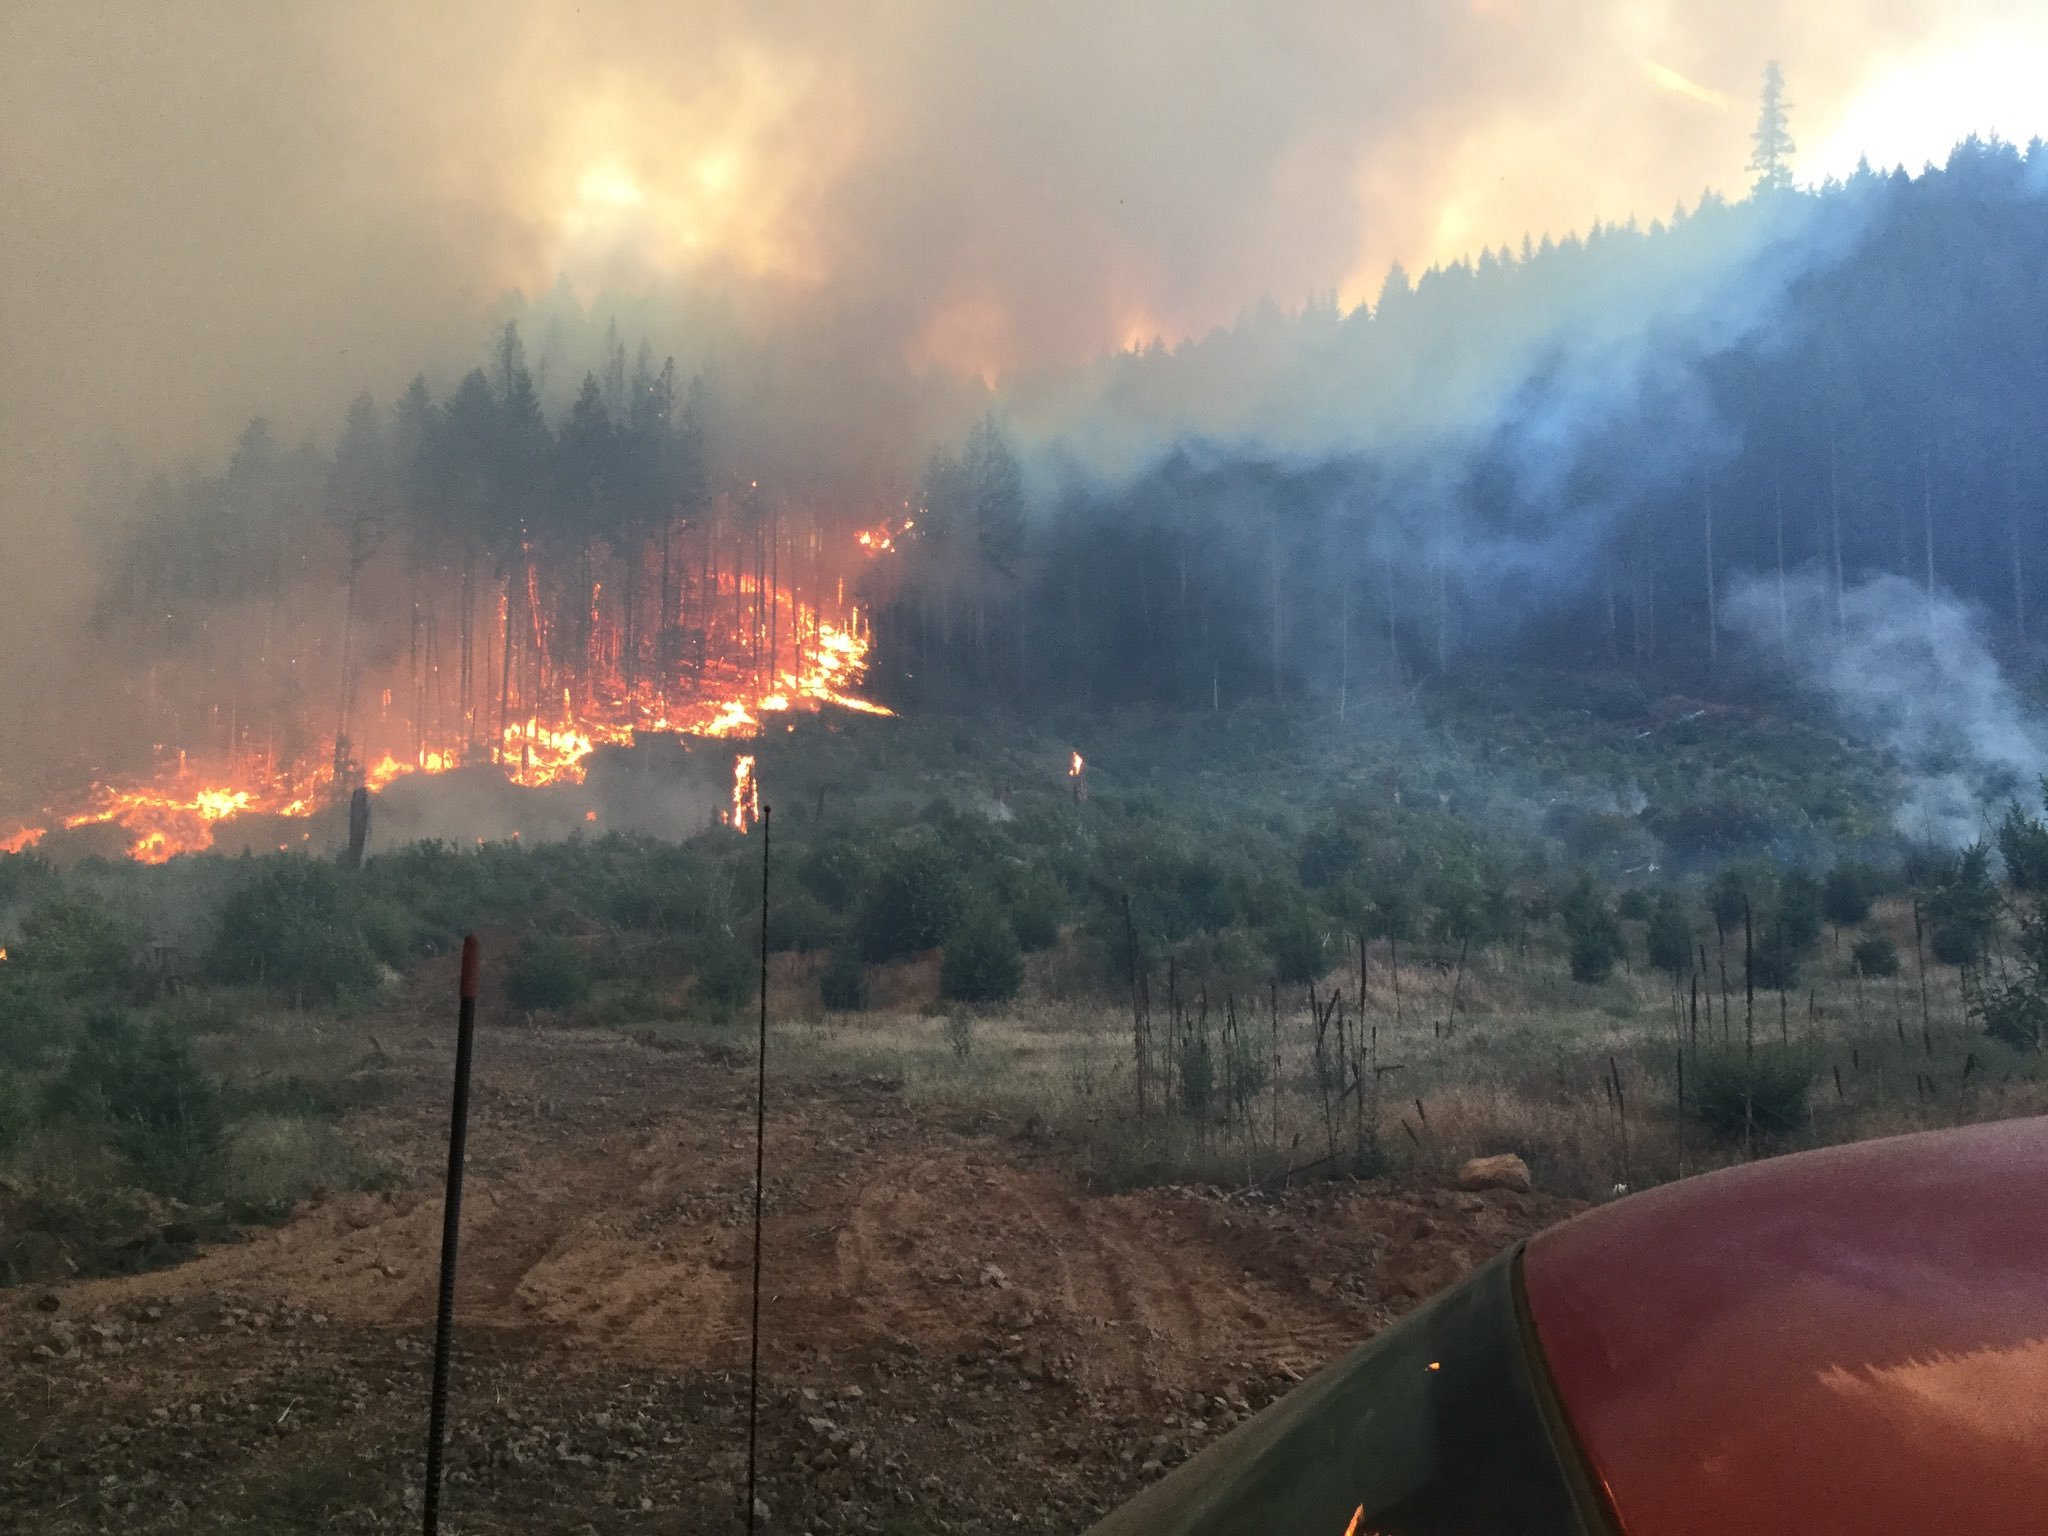 The Dry Creek Fire, courtesy of the Washington Department of Natural Resources.